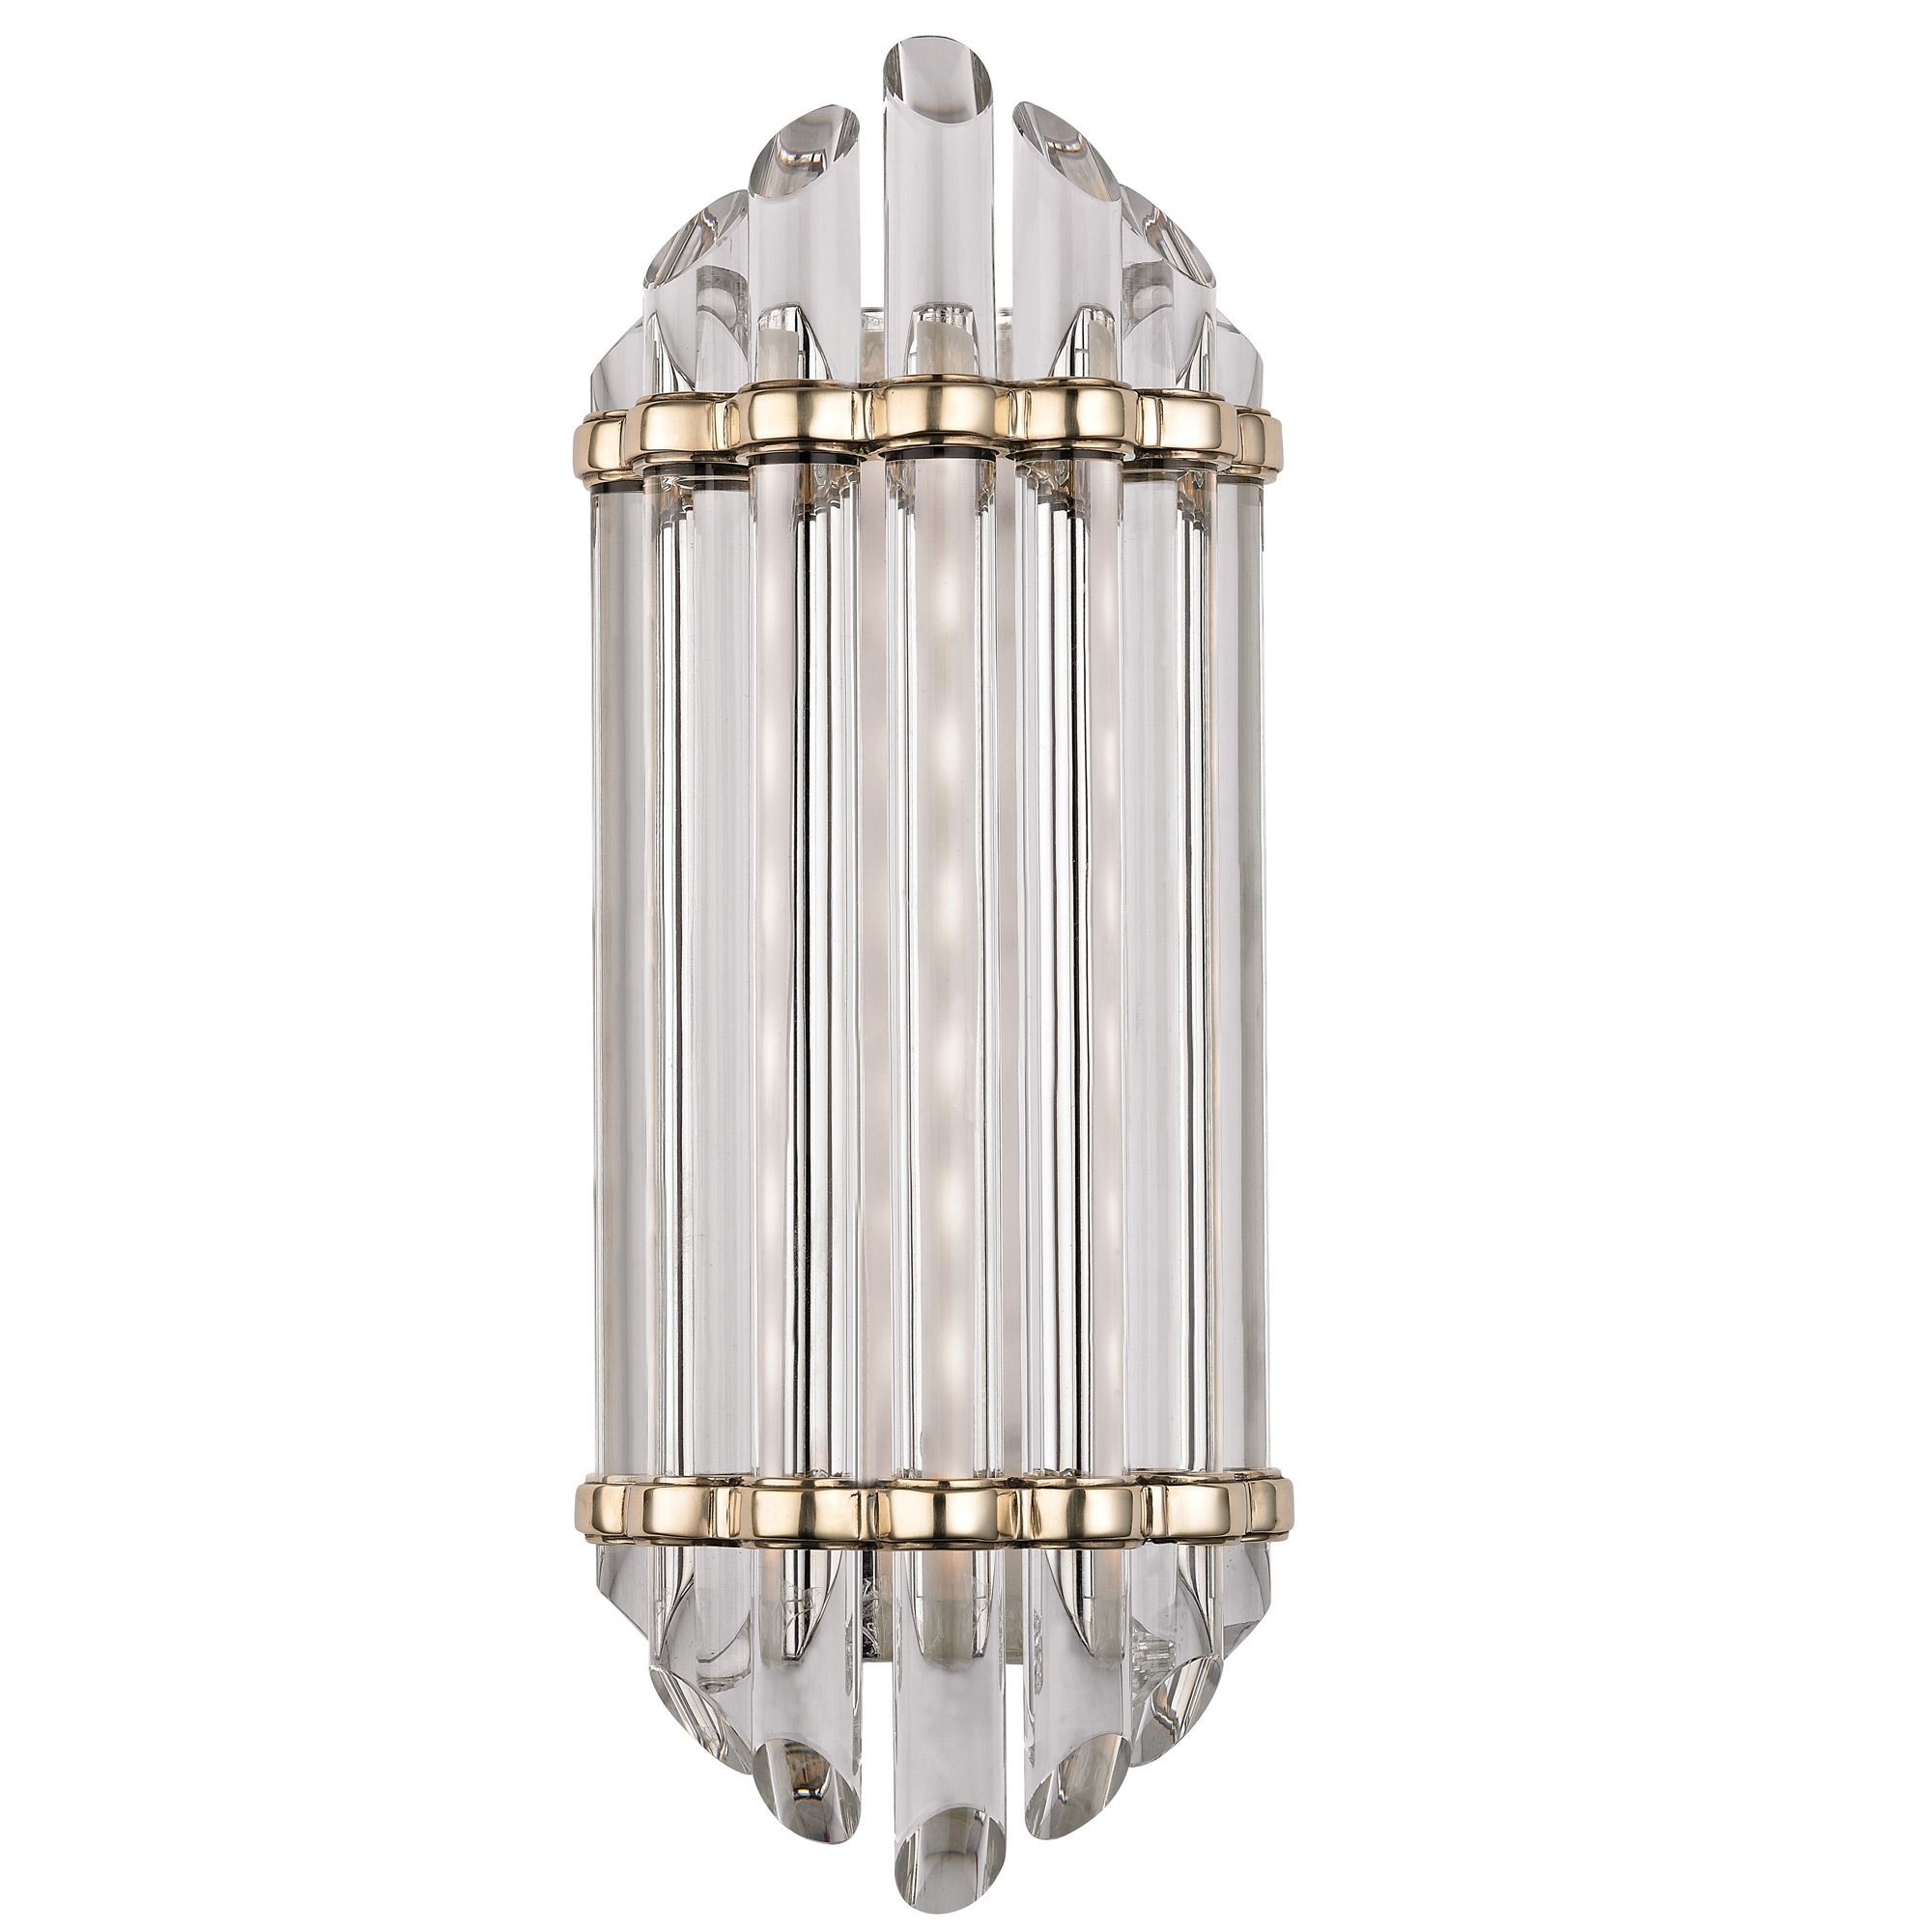 Albion Bath Light By Hudson Valley Lighting 408 Agb Hudson Valley Lighting Led Vanity Lights Led Bathroom Lights